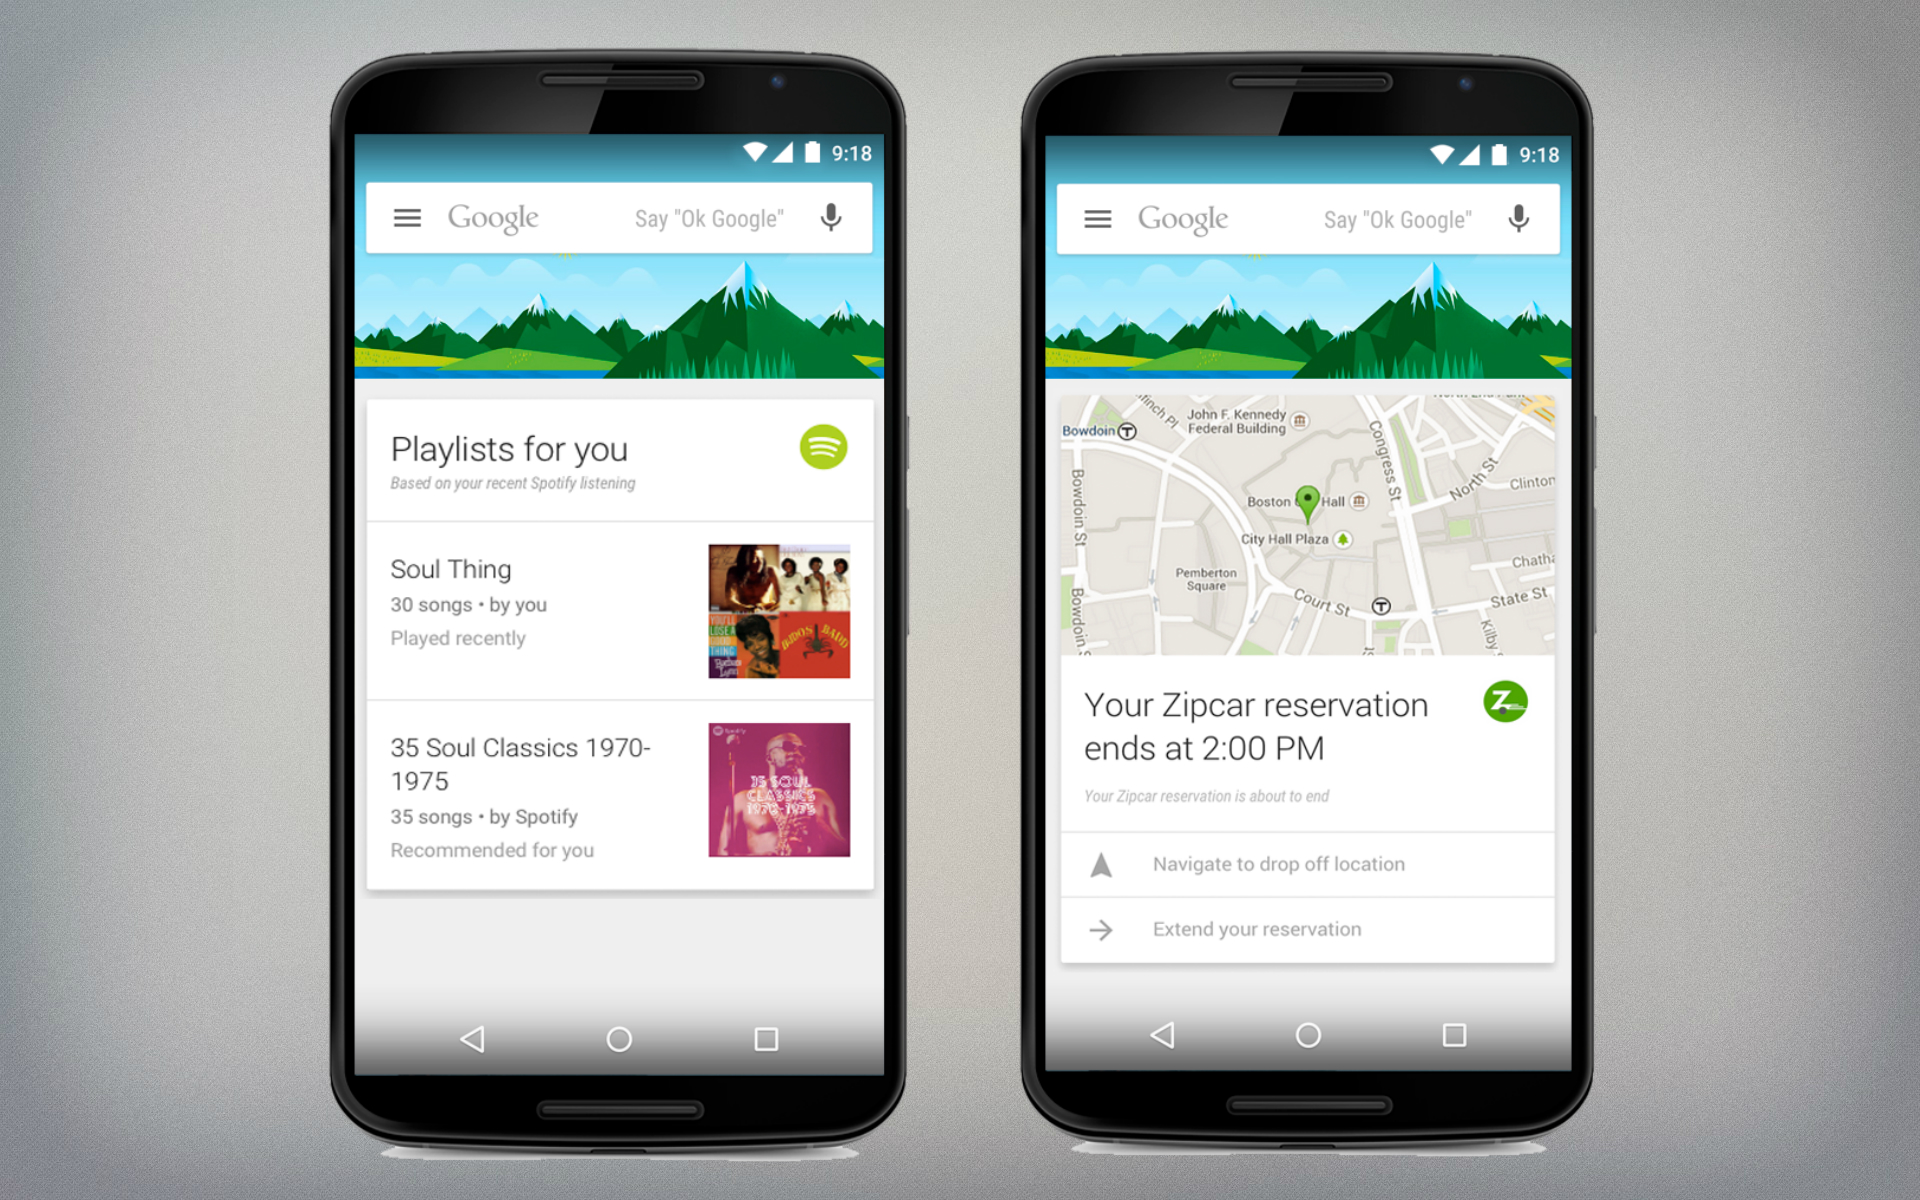 Custom Voice Commands For Apps on Google Now